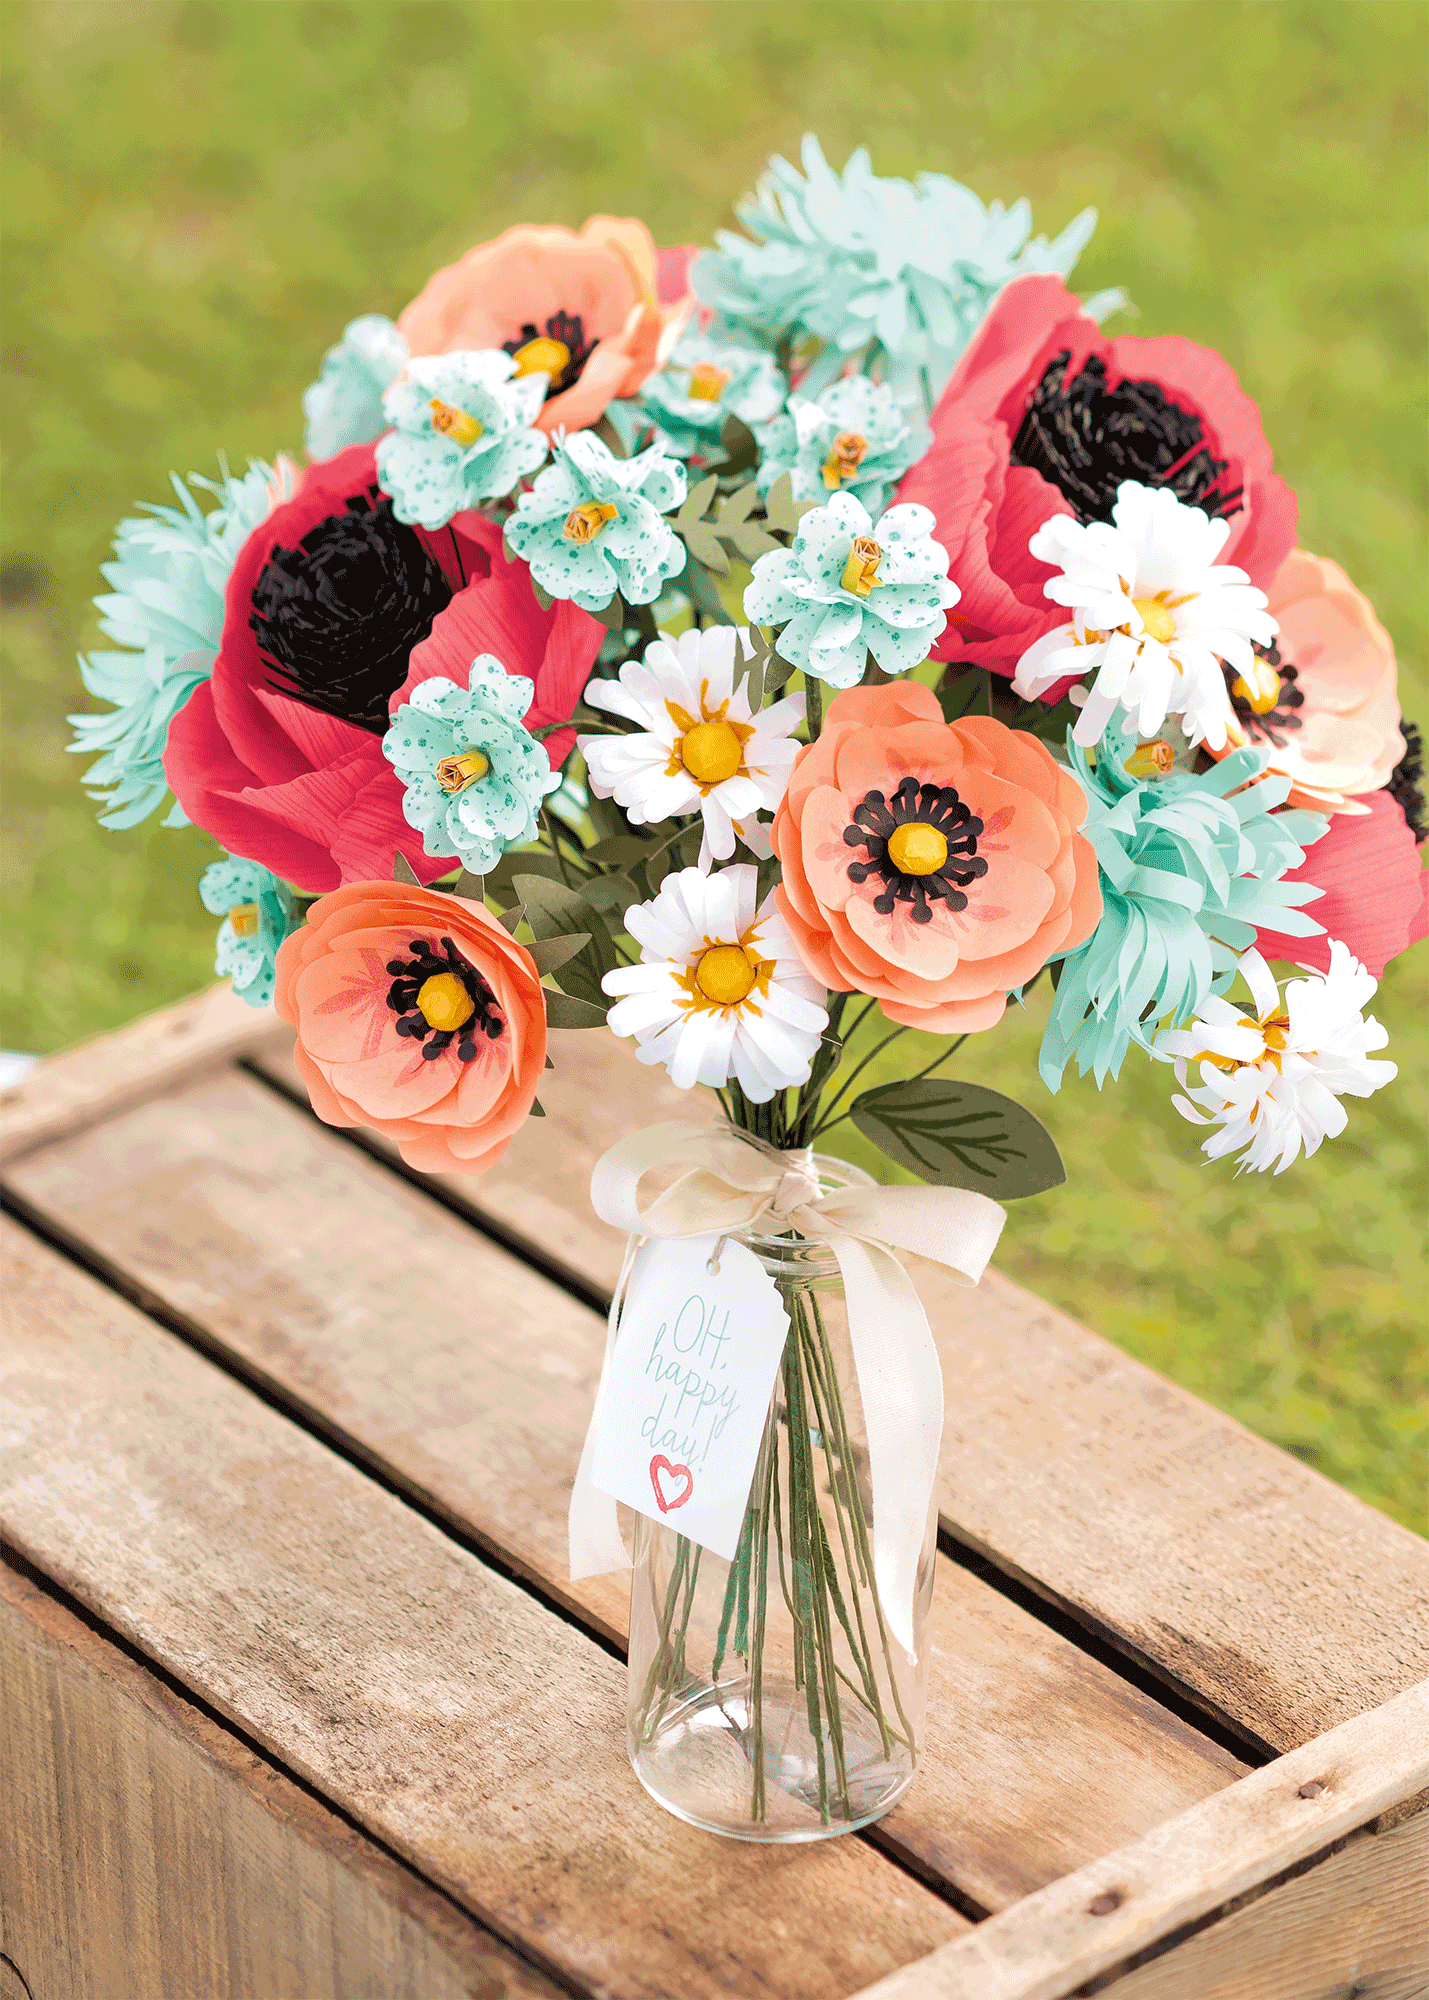 Make this lovely arrangement with the Build A Bouquet kit